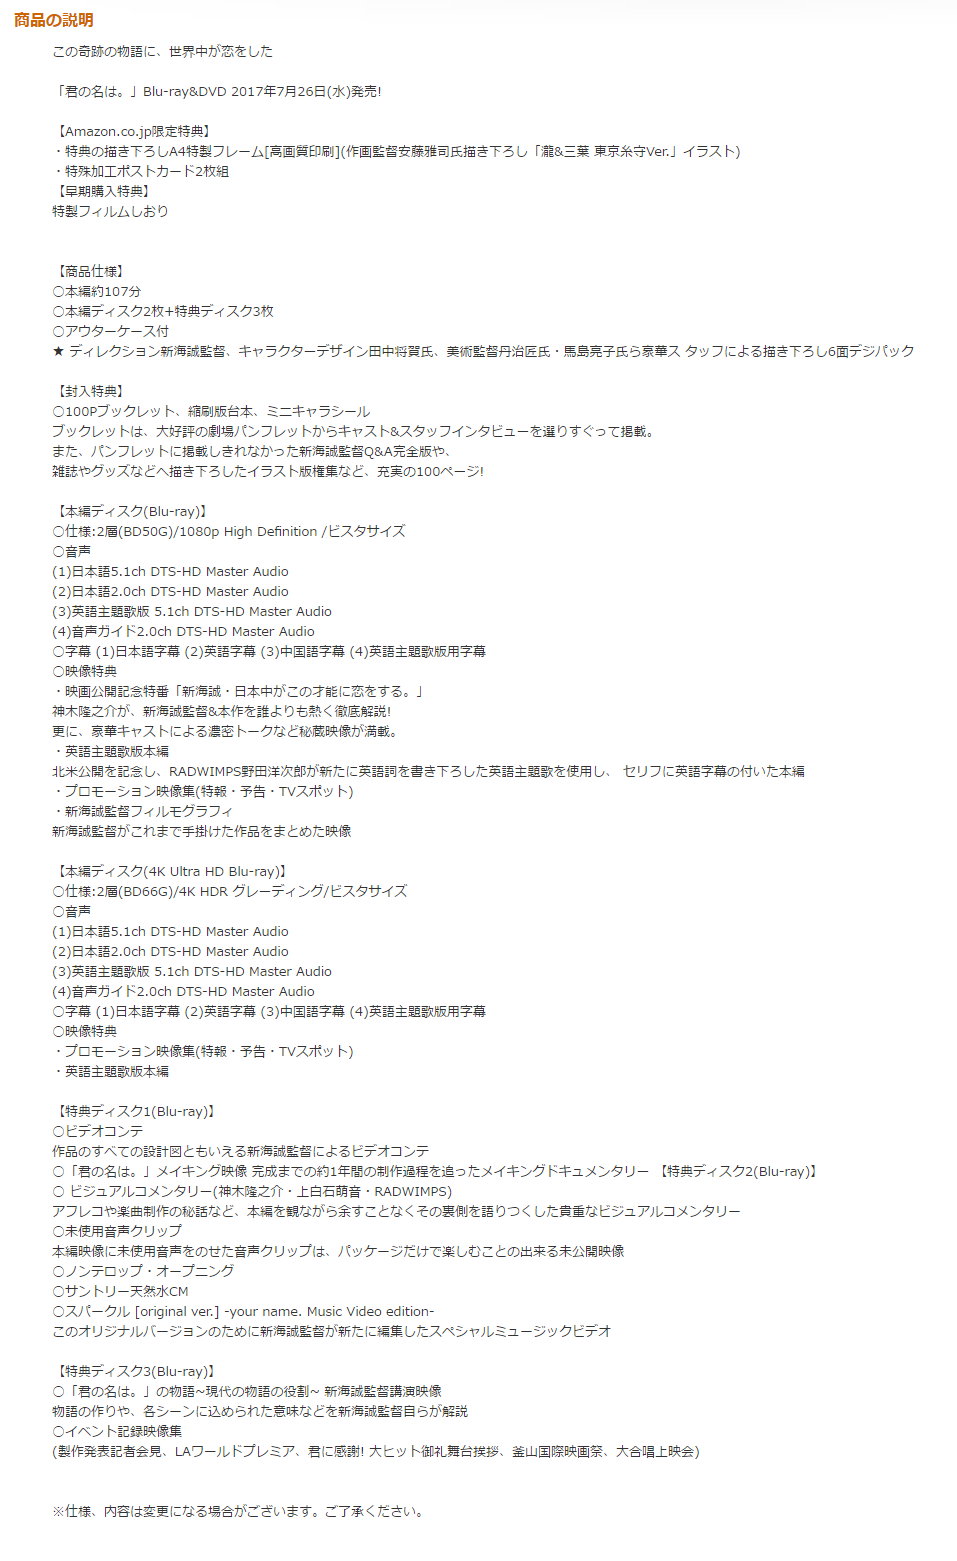 screencapture-amazon-co-jp-dp-B071NLPMZ5-ref-s9_acss_bw_cg_yourname_md2_w-149438.png